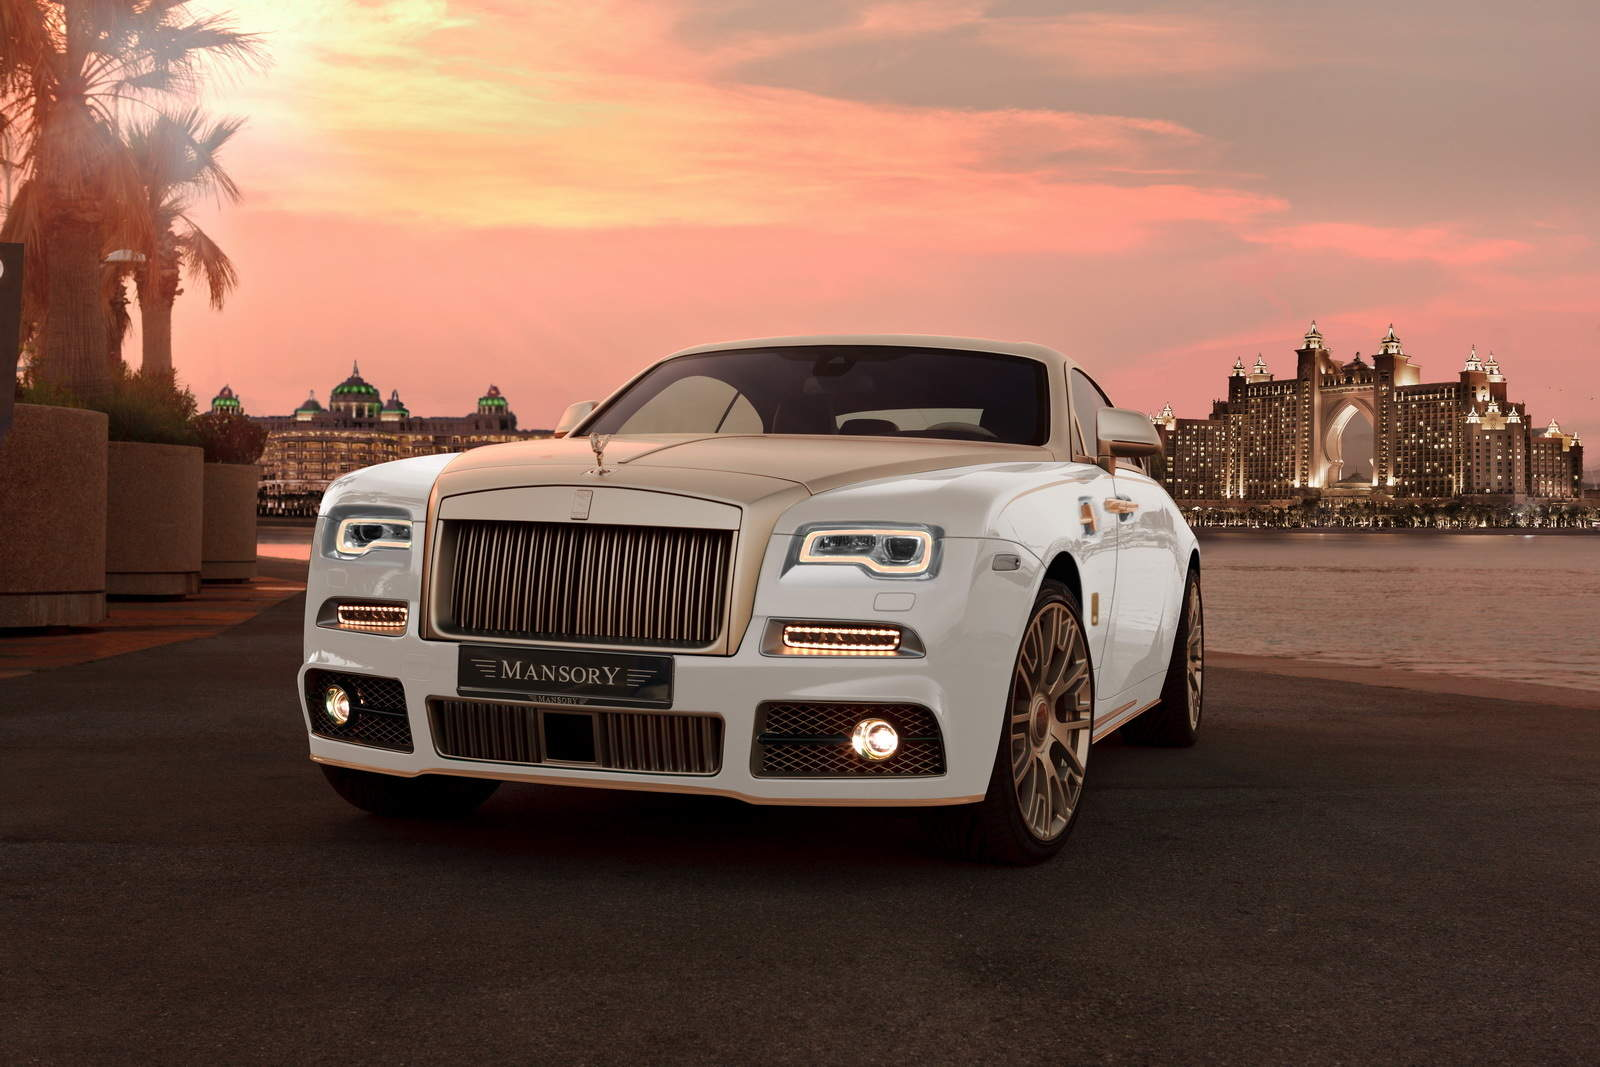 Mansory S Gold Plated Rolls Royce Wraith Palm Edition 999